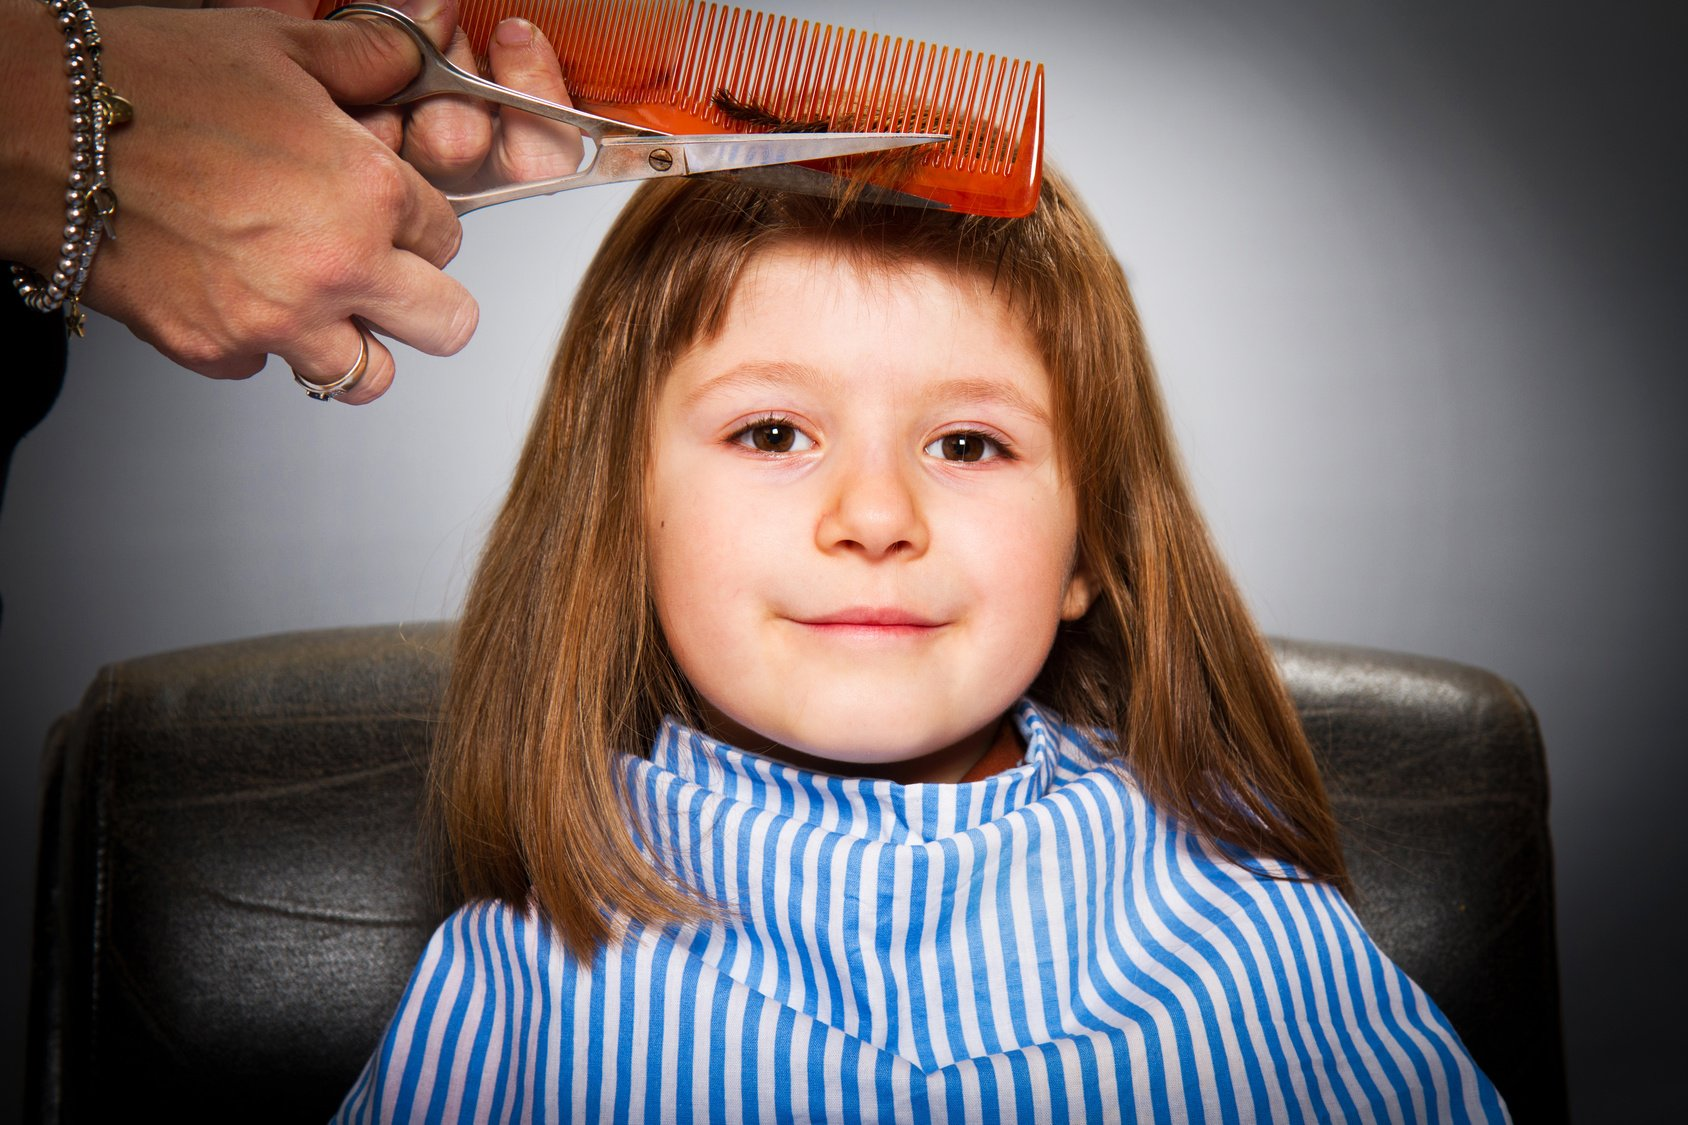 mum see cut that will not fail on childrens hair style Fotolia 102118863 Subscription Monthly M - お母さん必見!子どもの髪型に失敗しないカットの基本テクニック